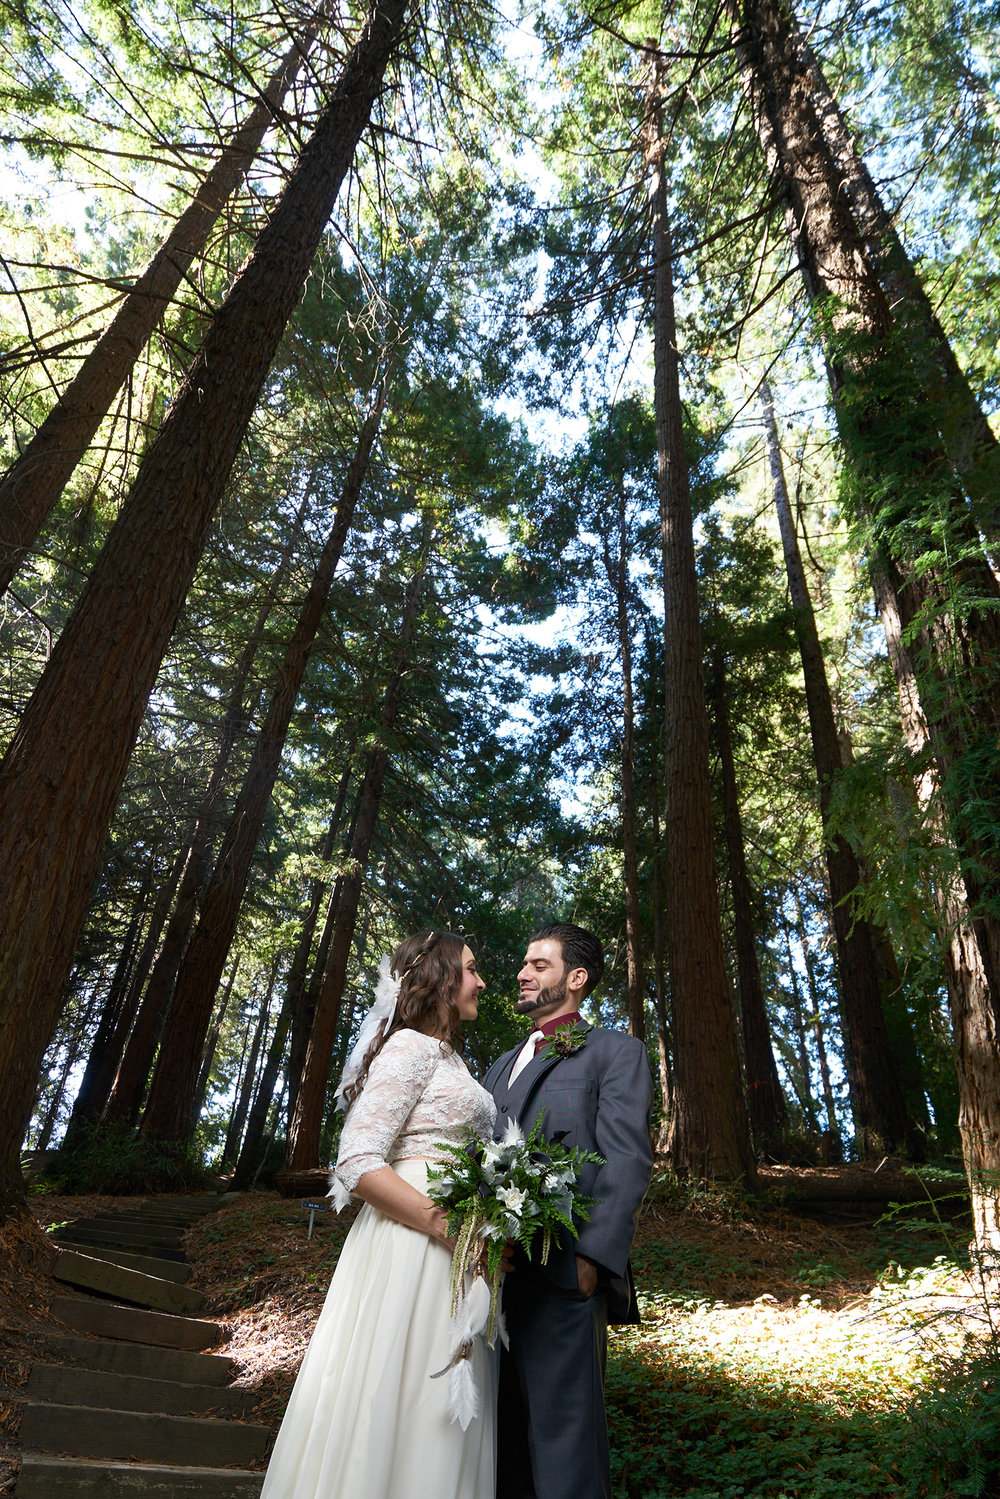 100717_Lenora_Jesse0382-weddingdress-bride-weddingphotography-best-weddingphotographer-bridal-groom-wedding-engagementring-proposal-brides-diamondring-sonyalpha-sony-sonya7rii-sanfrancisco-sf-bayarea-photographer-profoto-berkeley-botanical-garden.jpg